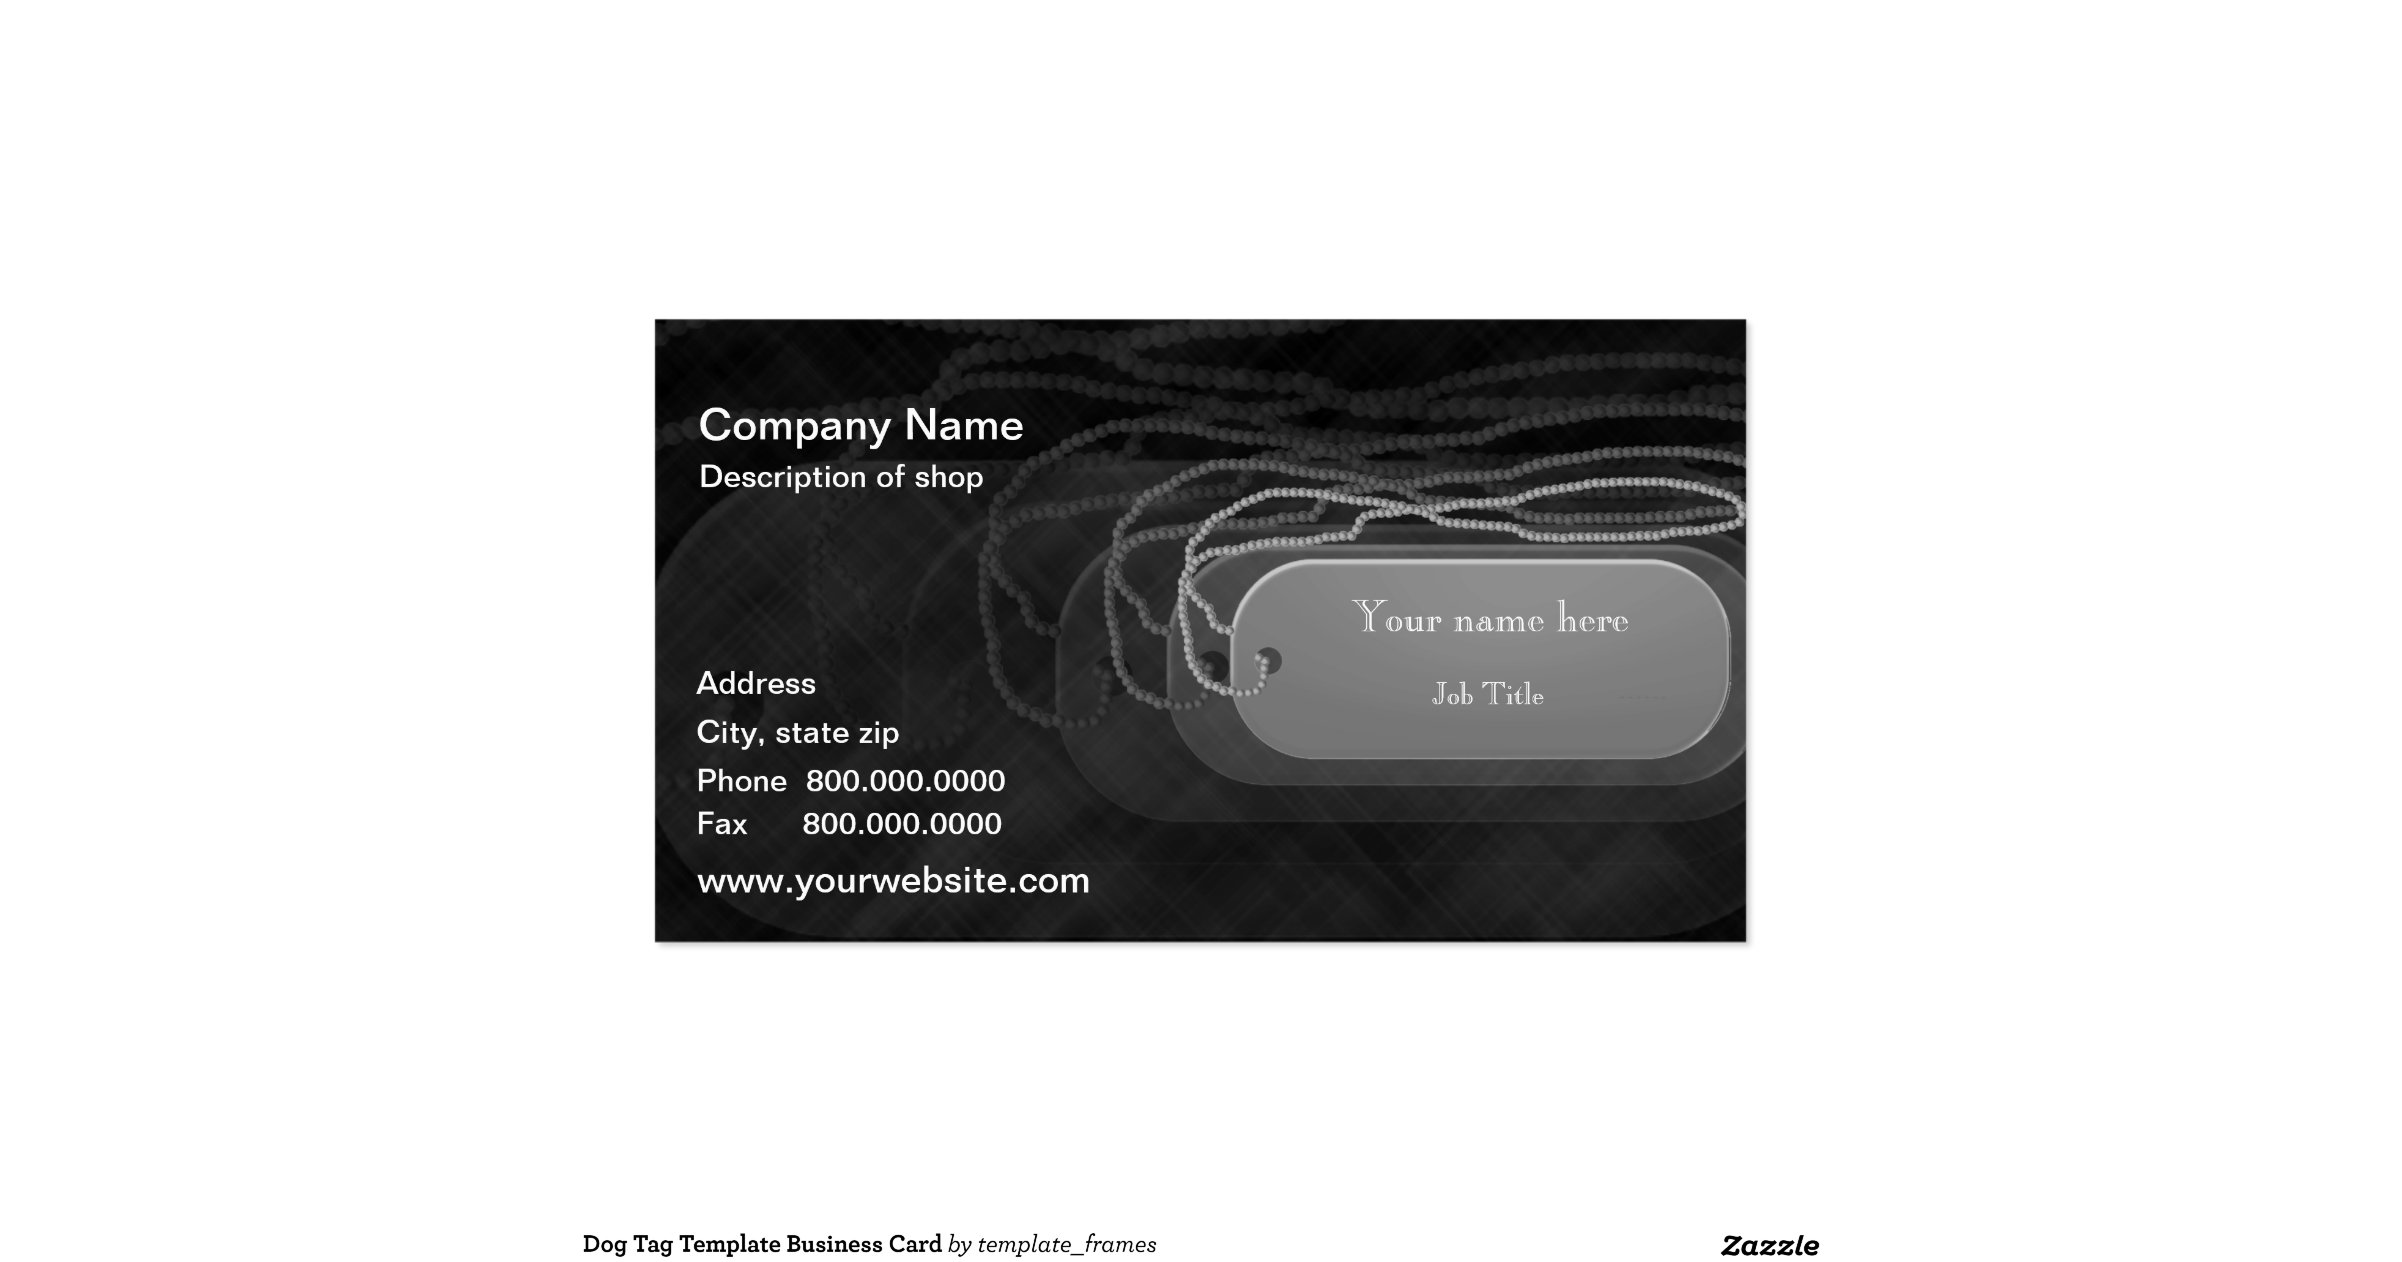 Dog tag template business card for Dog tag business cards